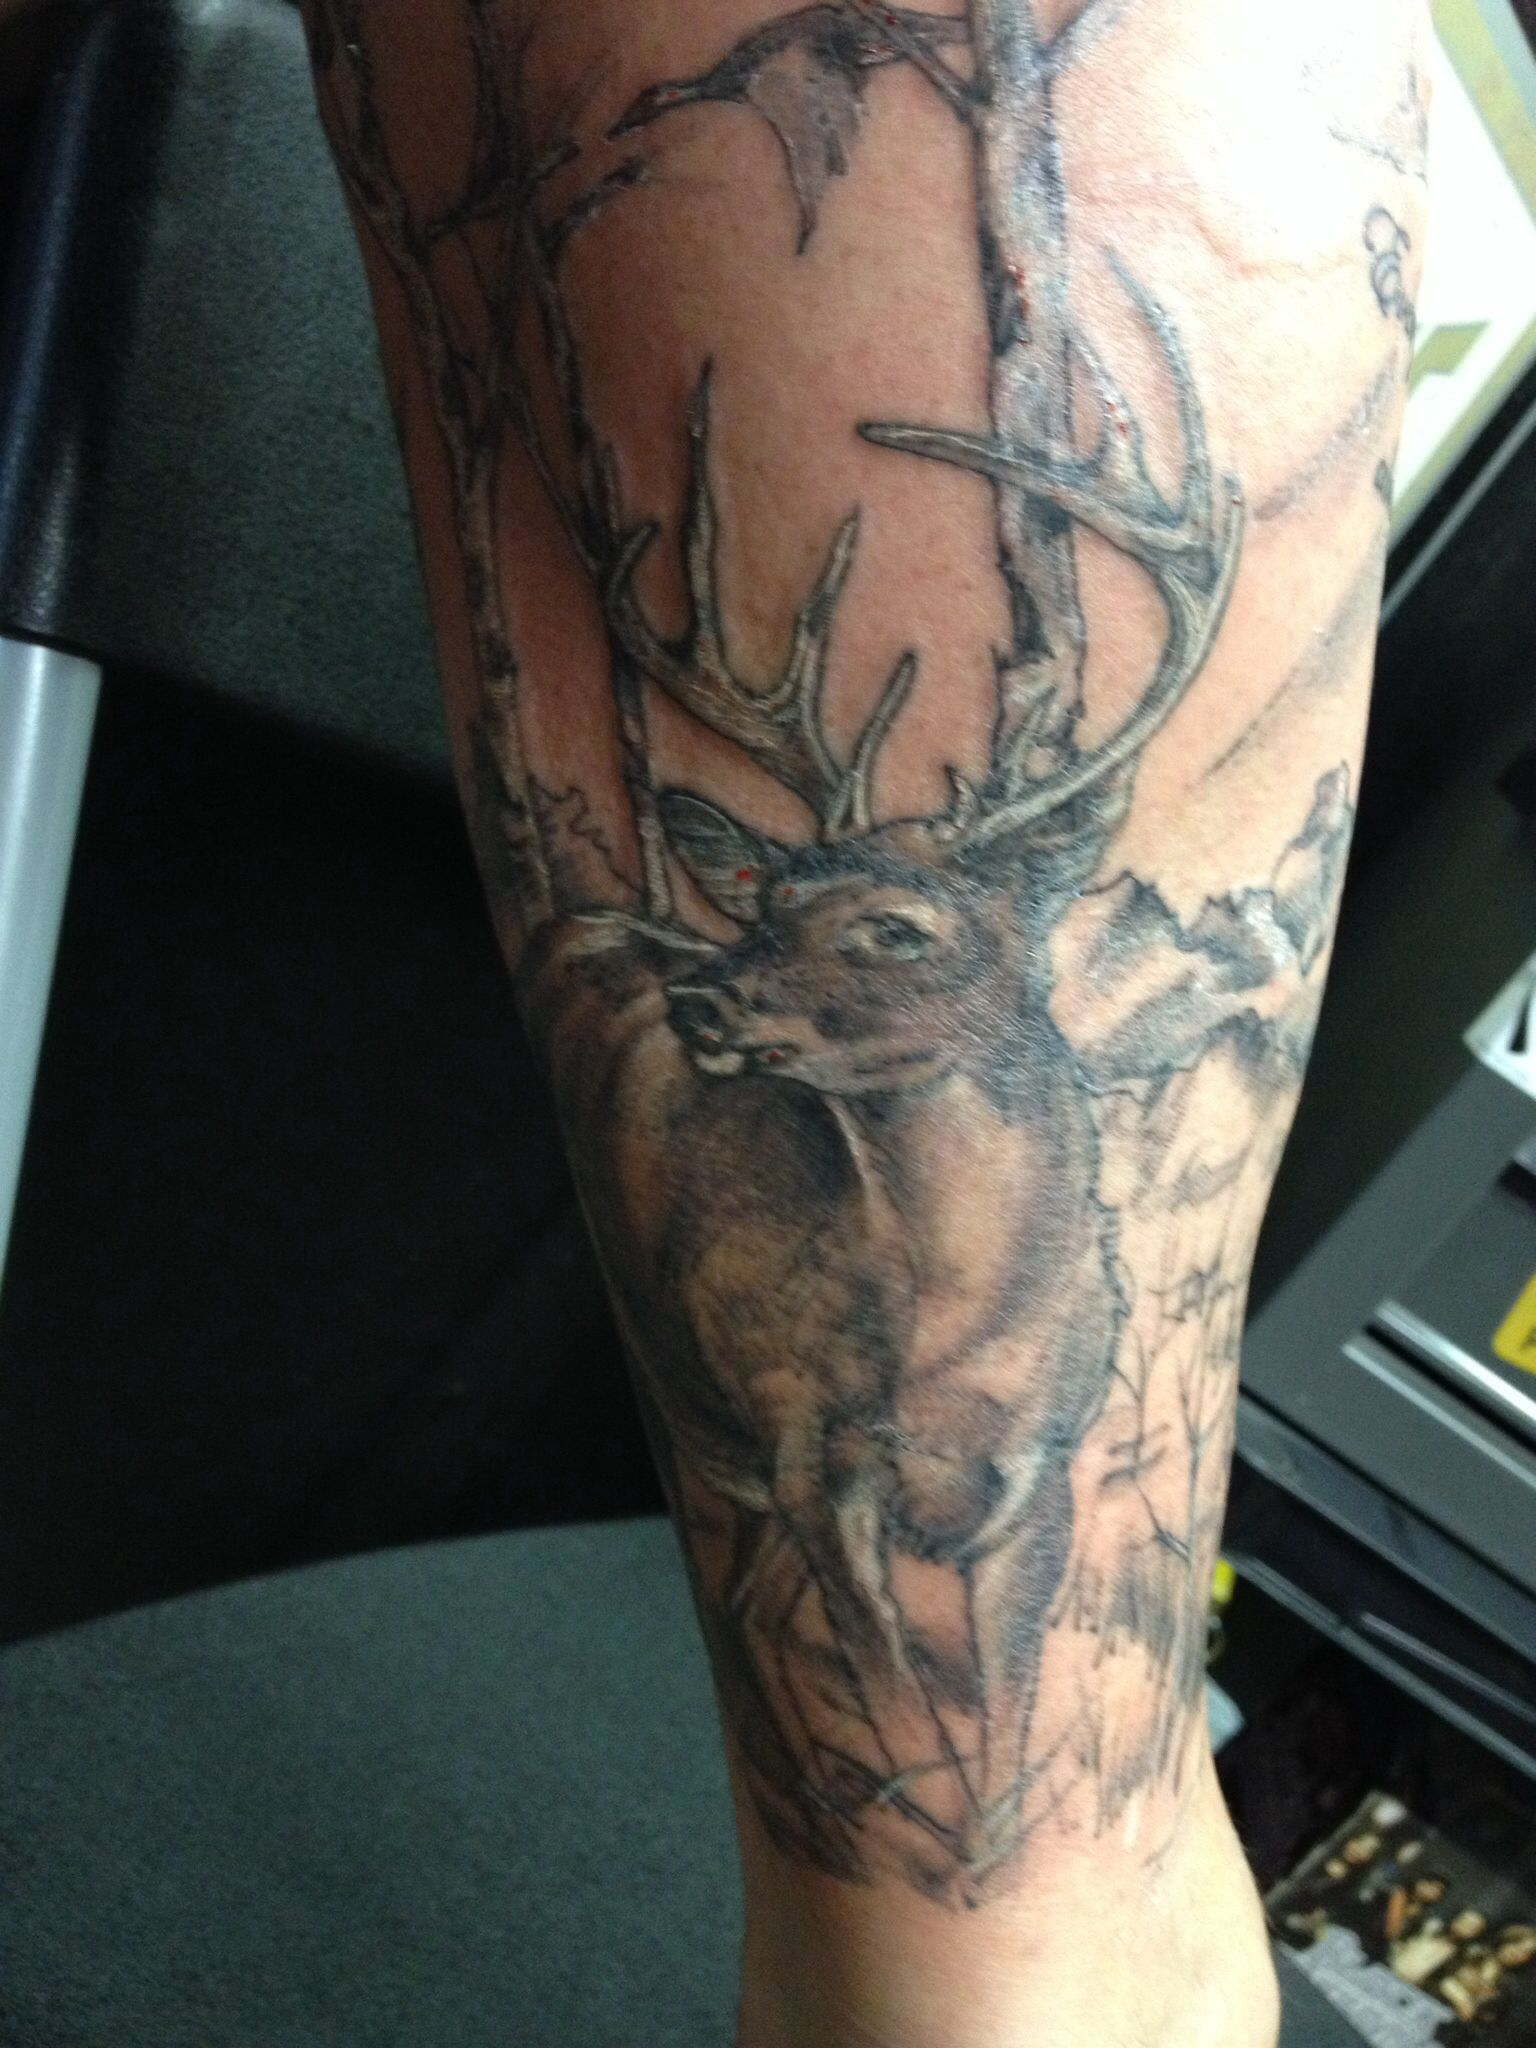 Hunting Tattoo Hunting Tattoos Tattoos For Guys Deer Hunting Tattoos